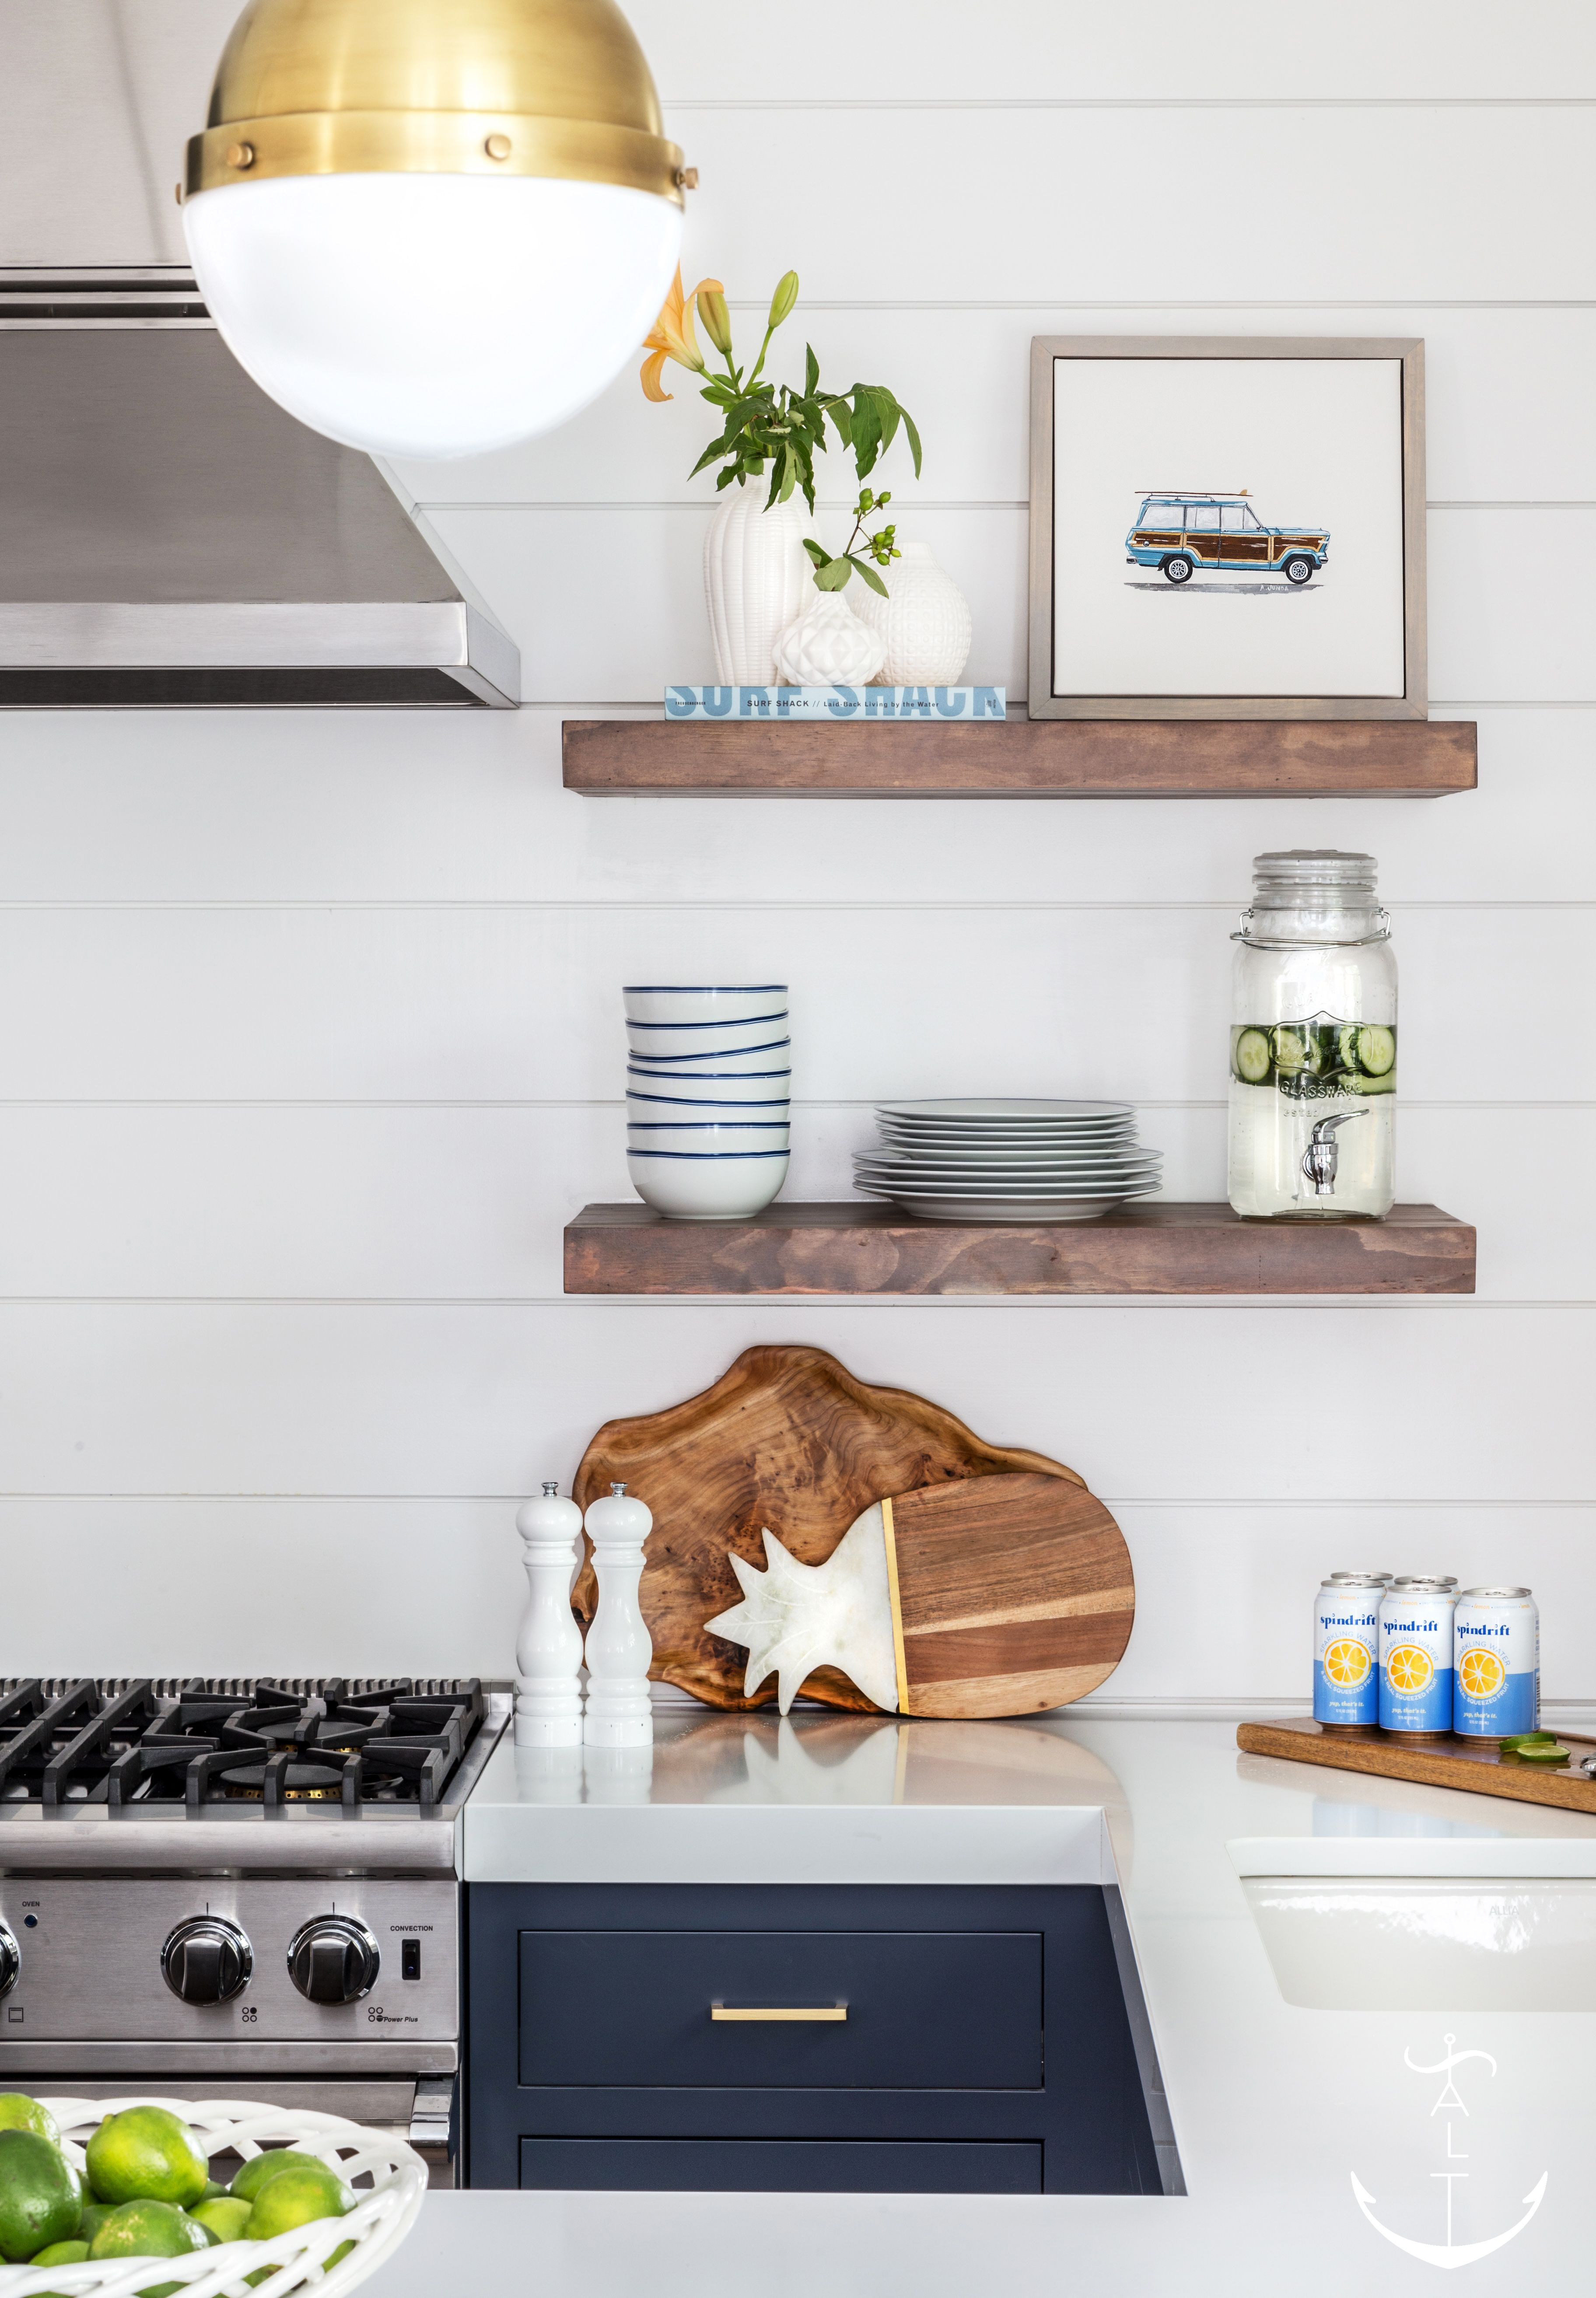 Beside A Stainless Steel Vent Hood, Wood Floating Shelves Are